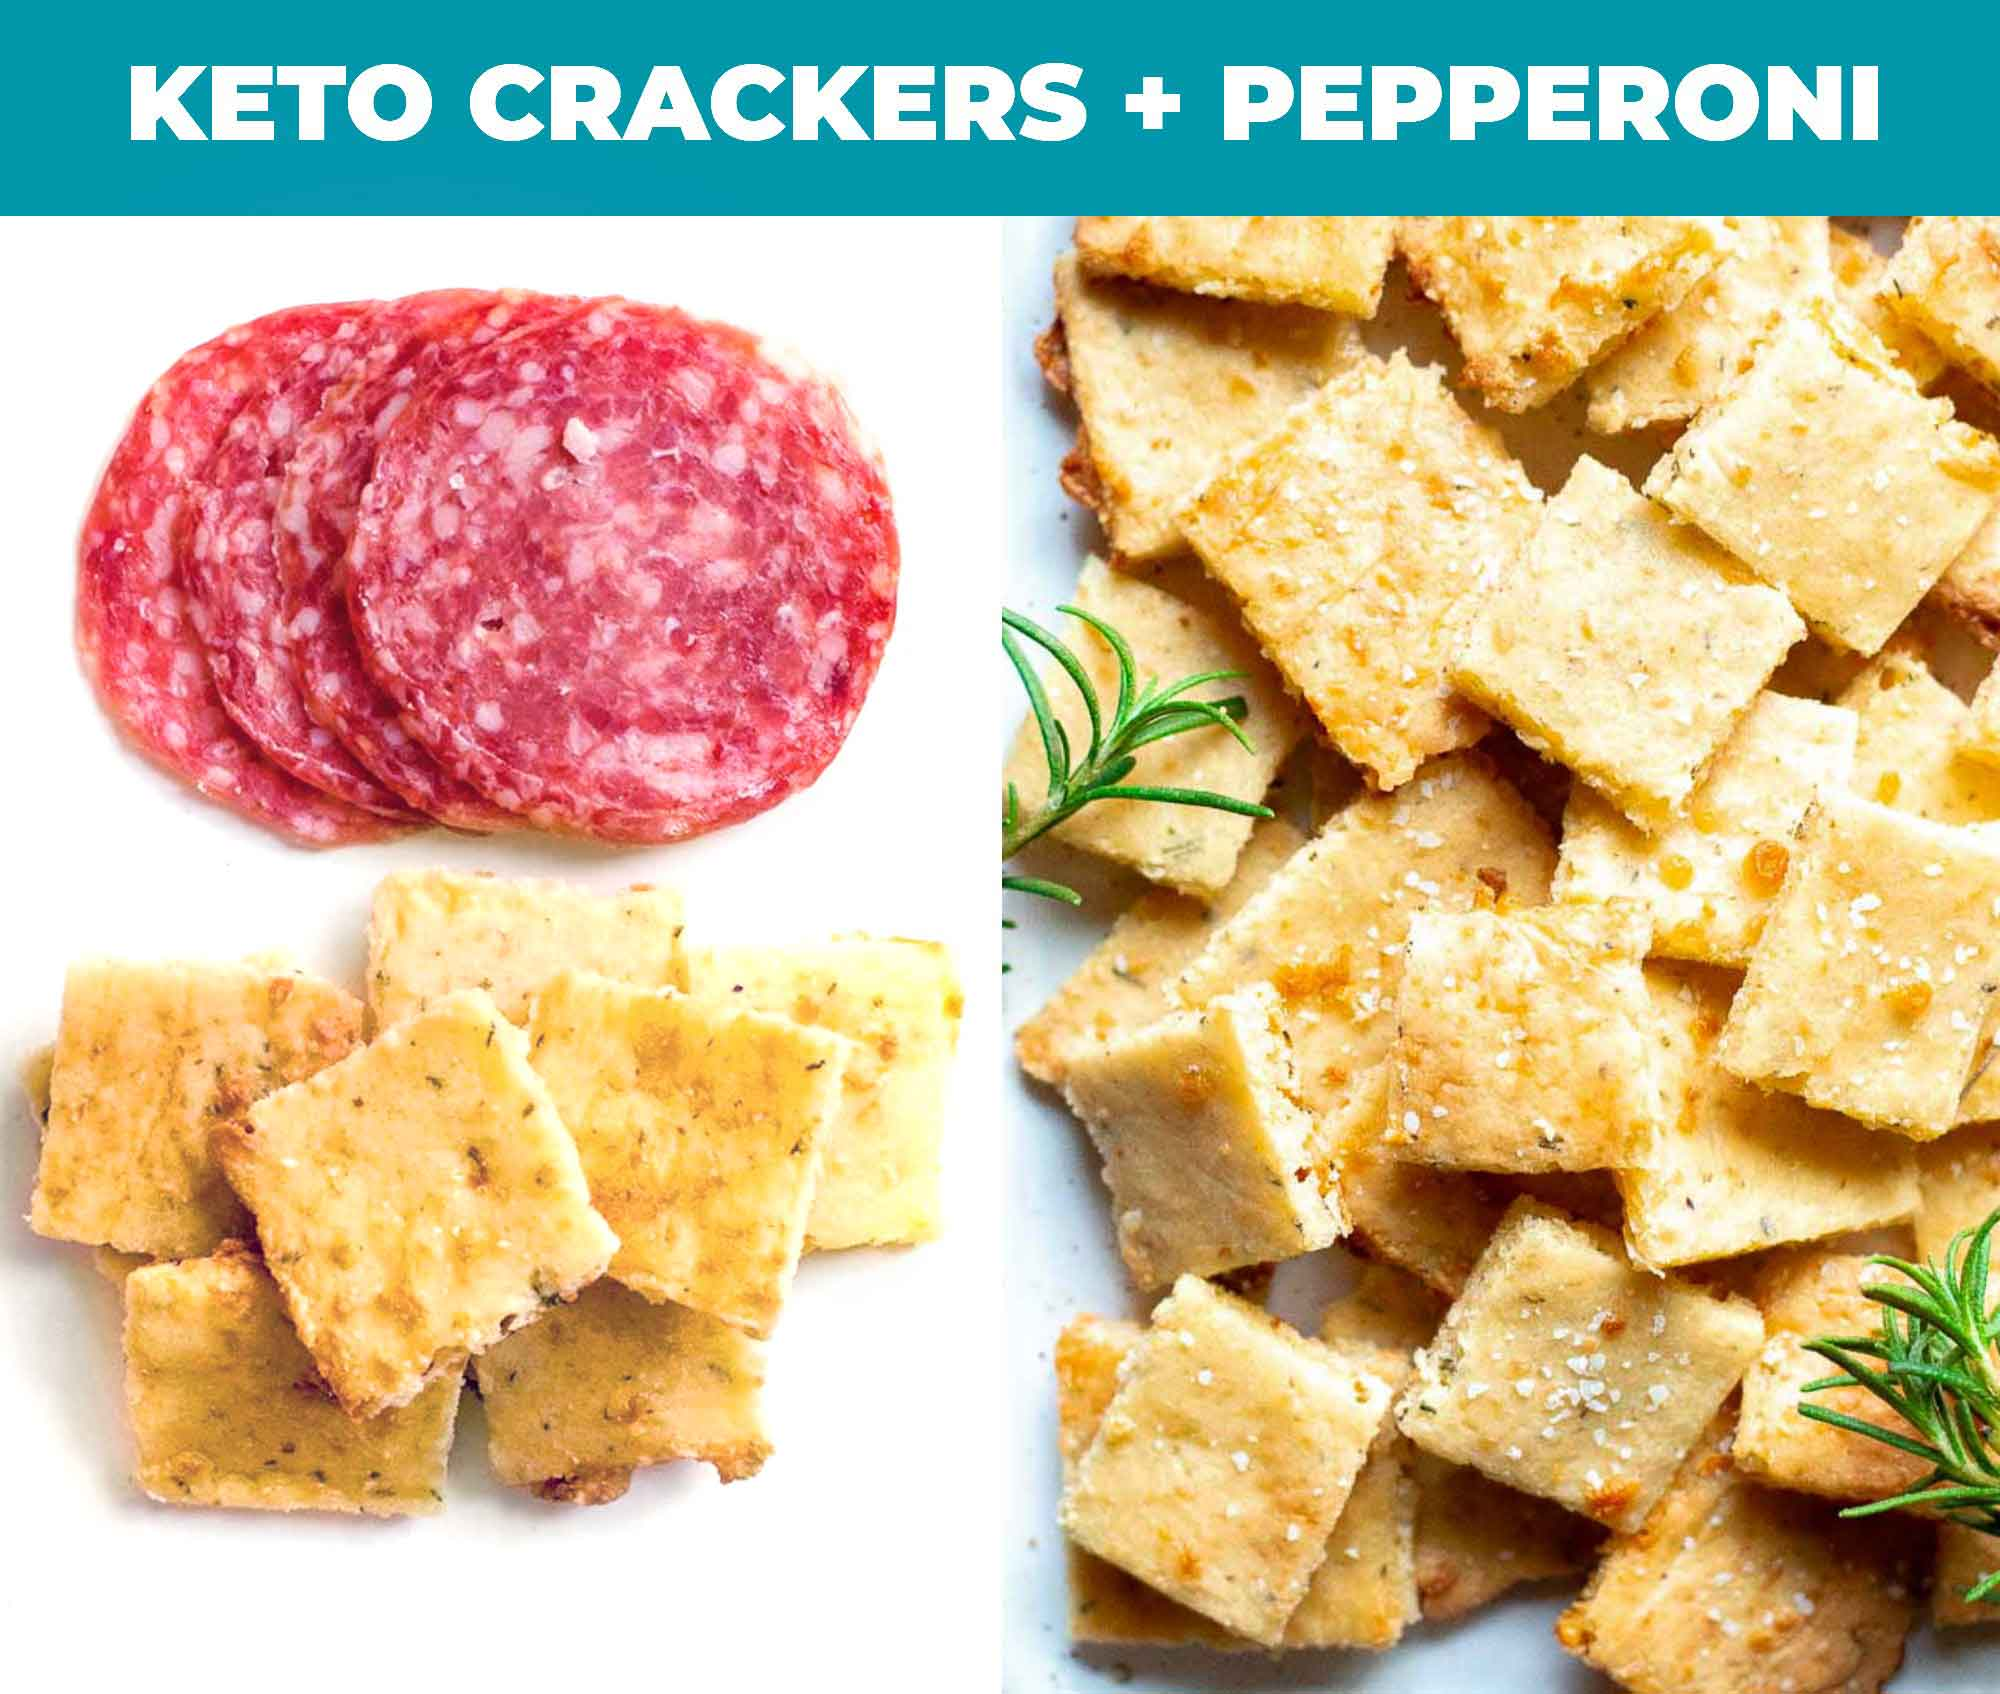 Images of keto crackers with pepperoni